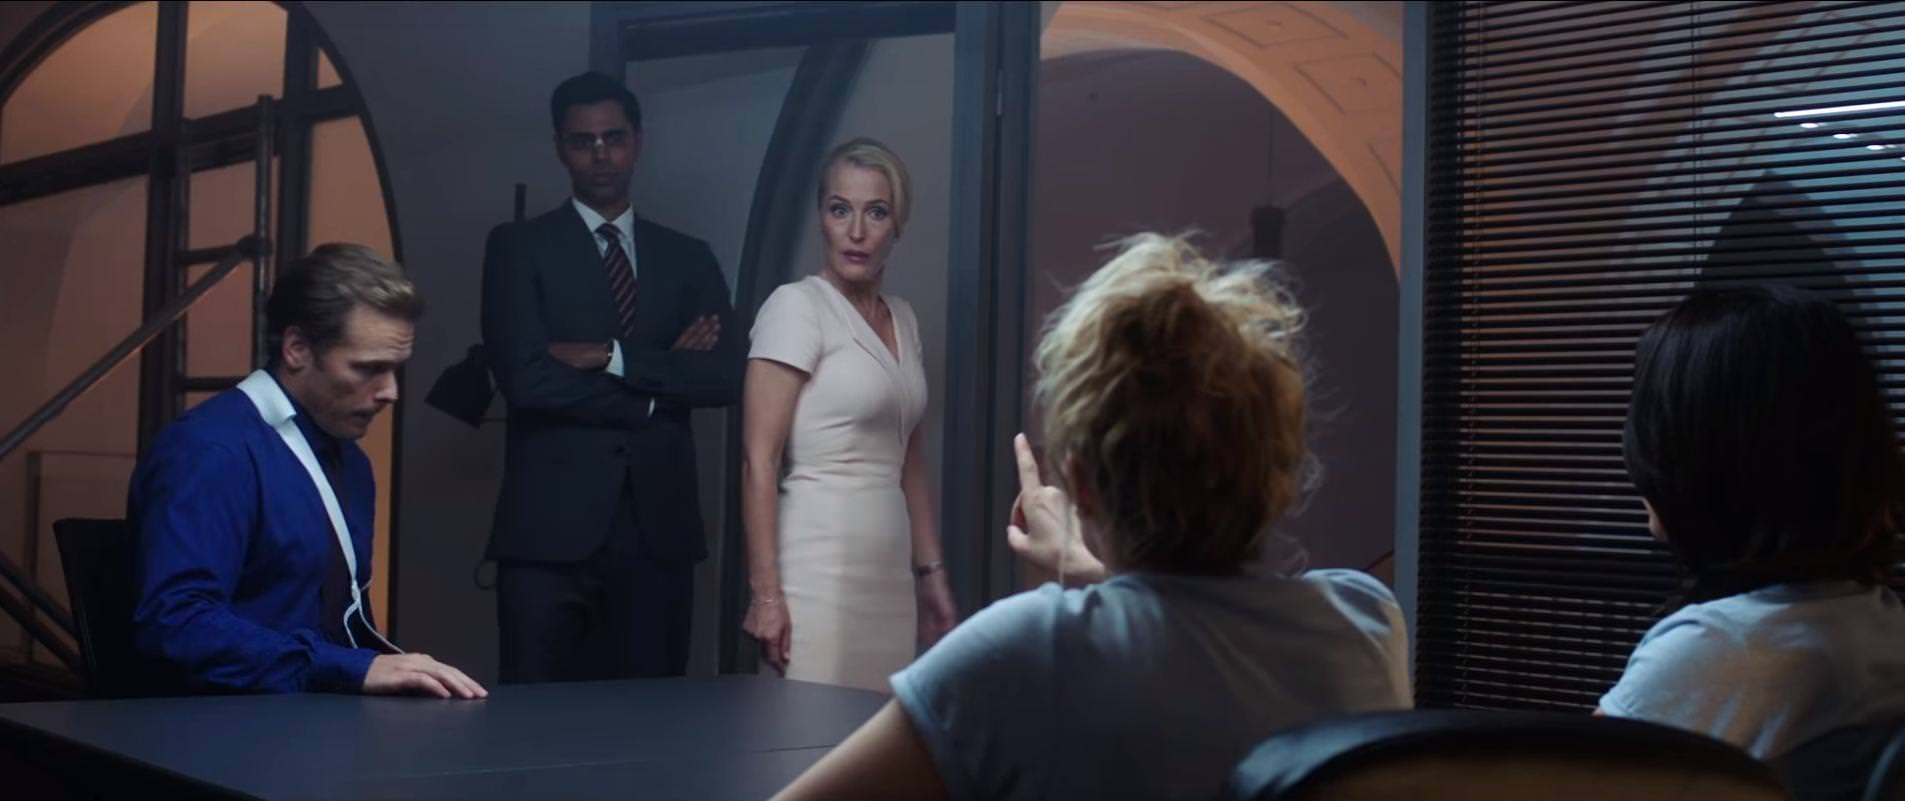 Image from GSC Movies